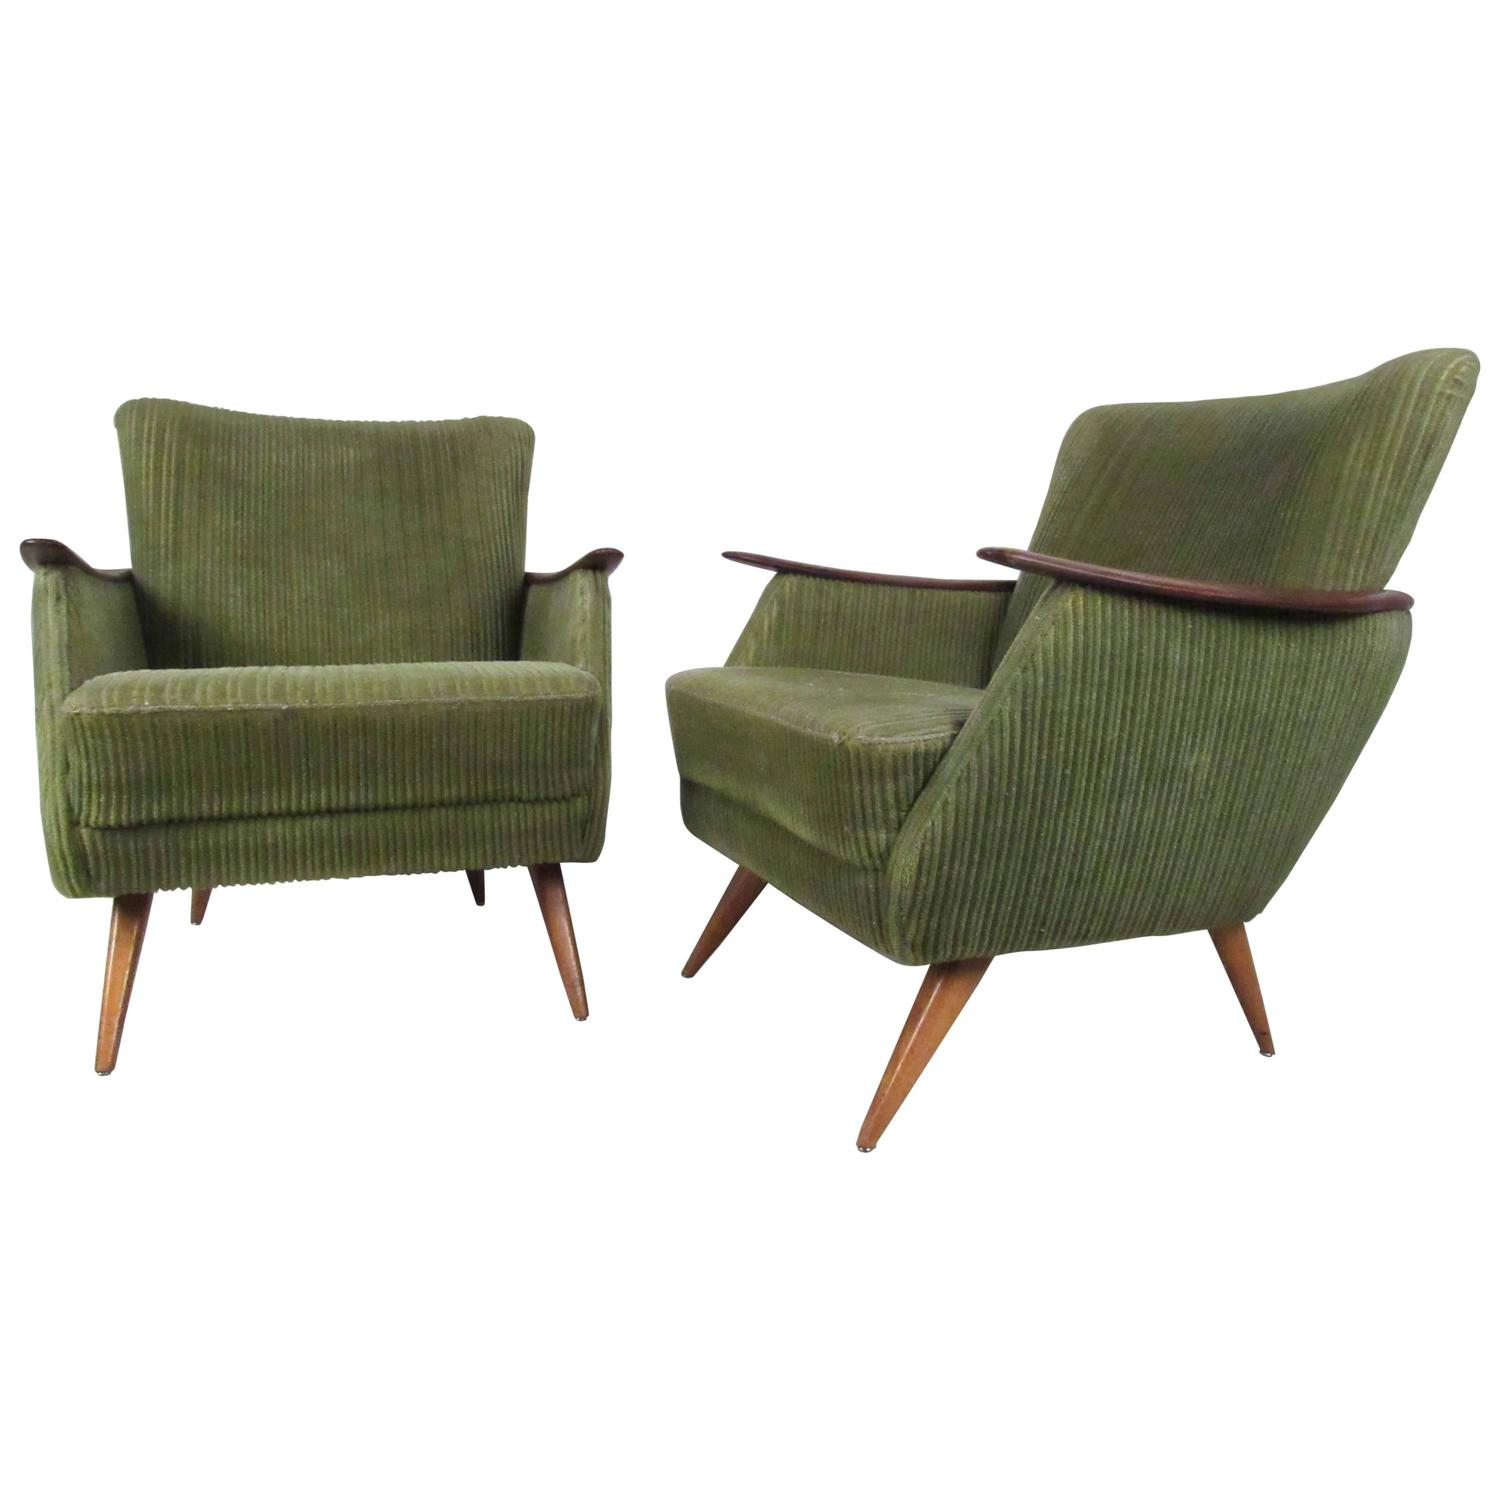 Unique Furniture For Sale: Unique Mid-Century Modern Danish Lounge Chairs For Sale At